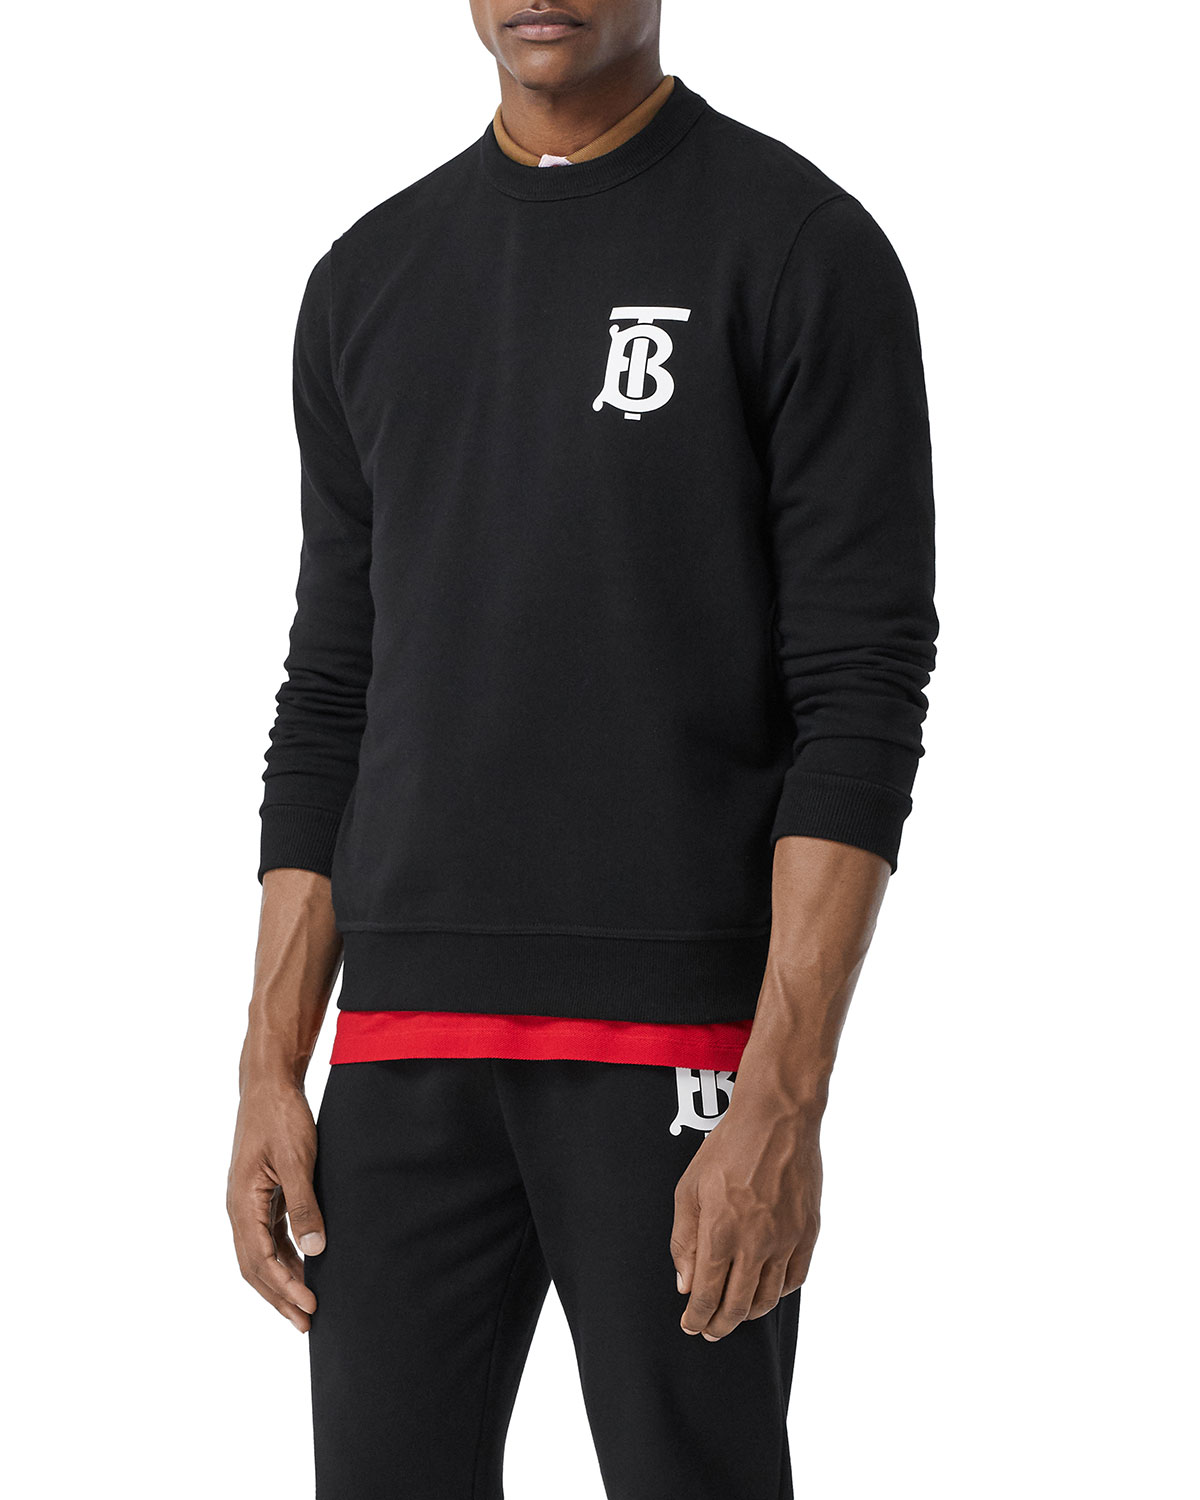 Burberry Men's TB Logo Pullover Sweatshirt